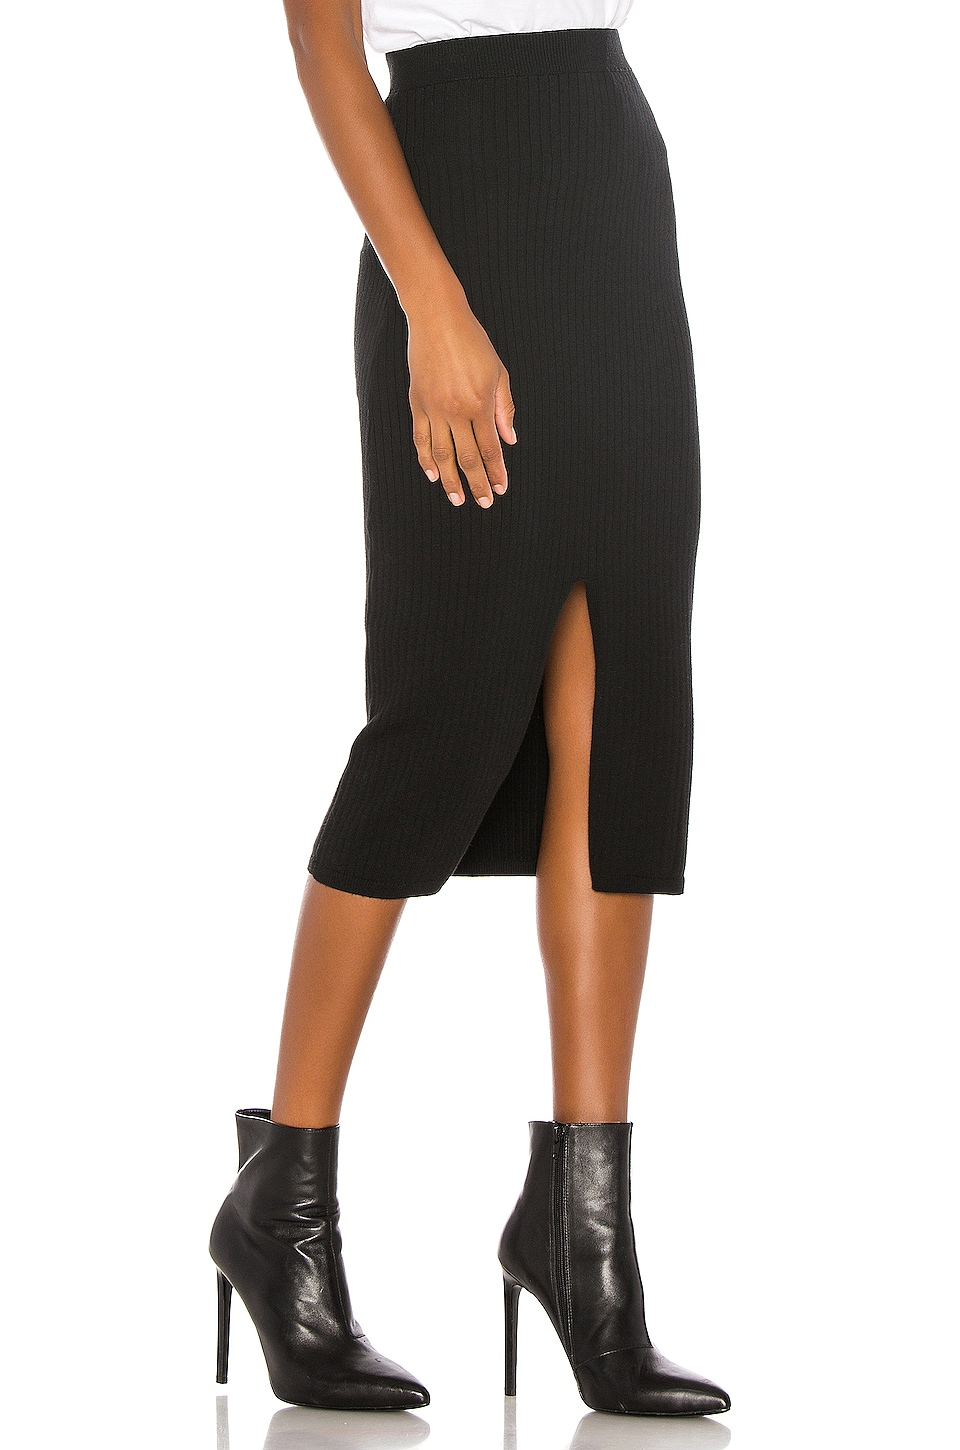 Skyline Midi Skirt, view 2, click to view large image.